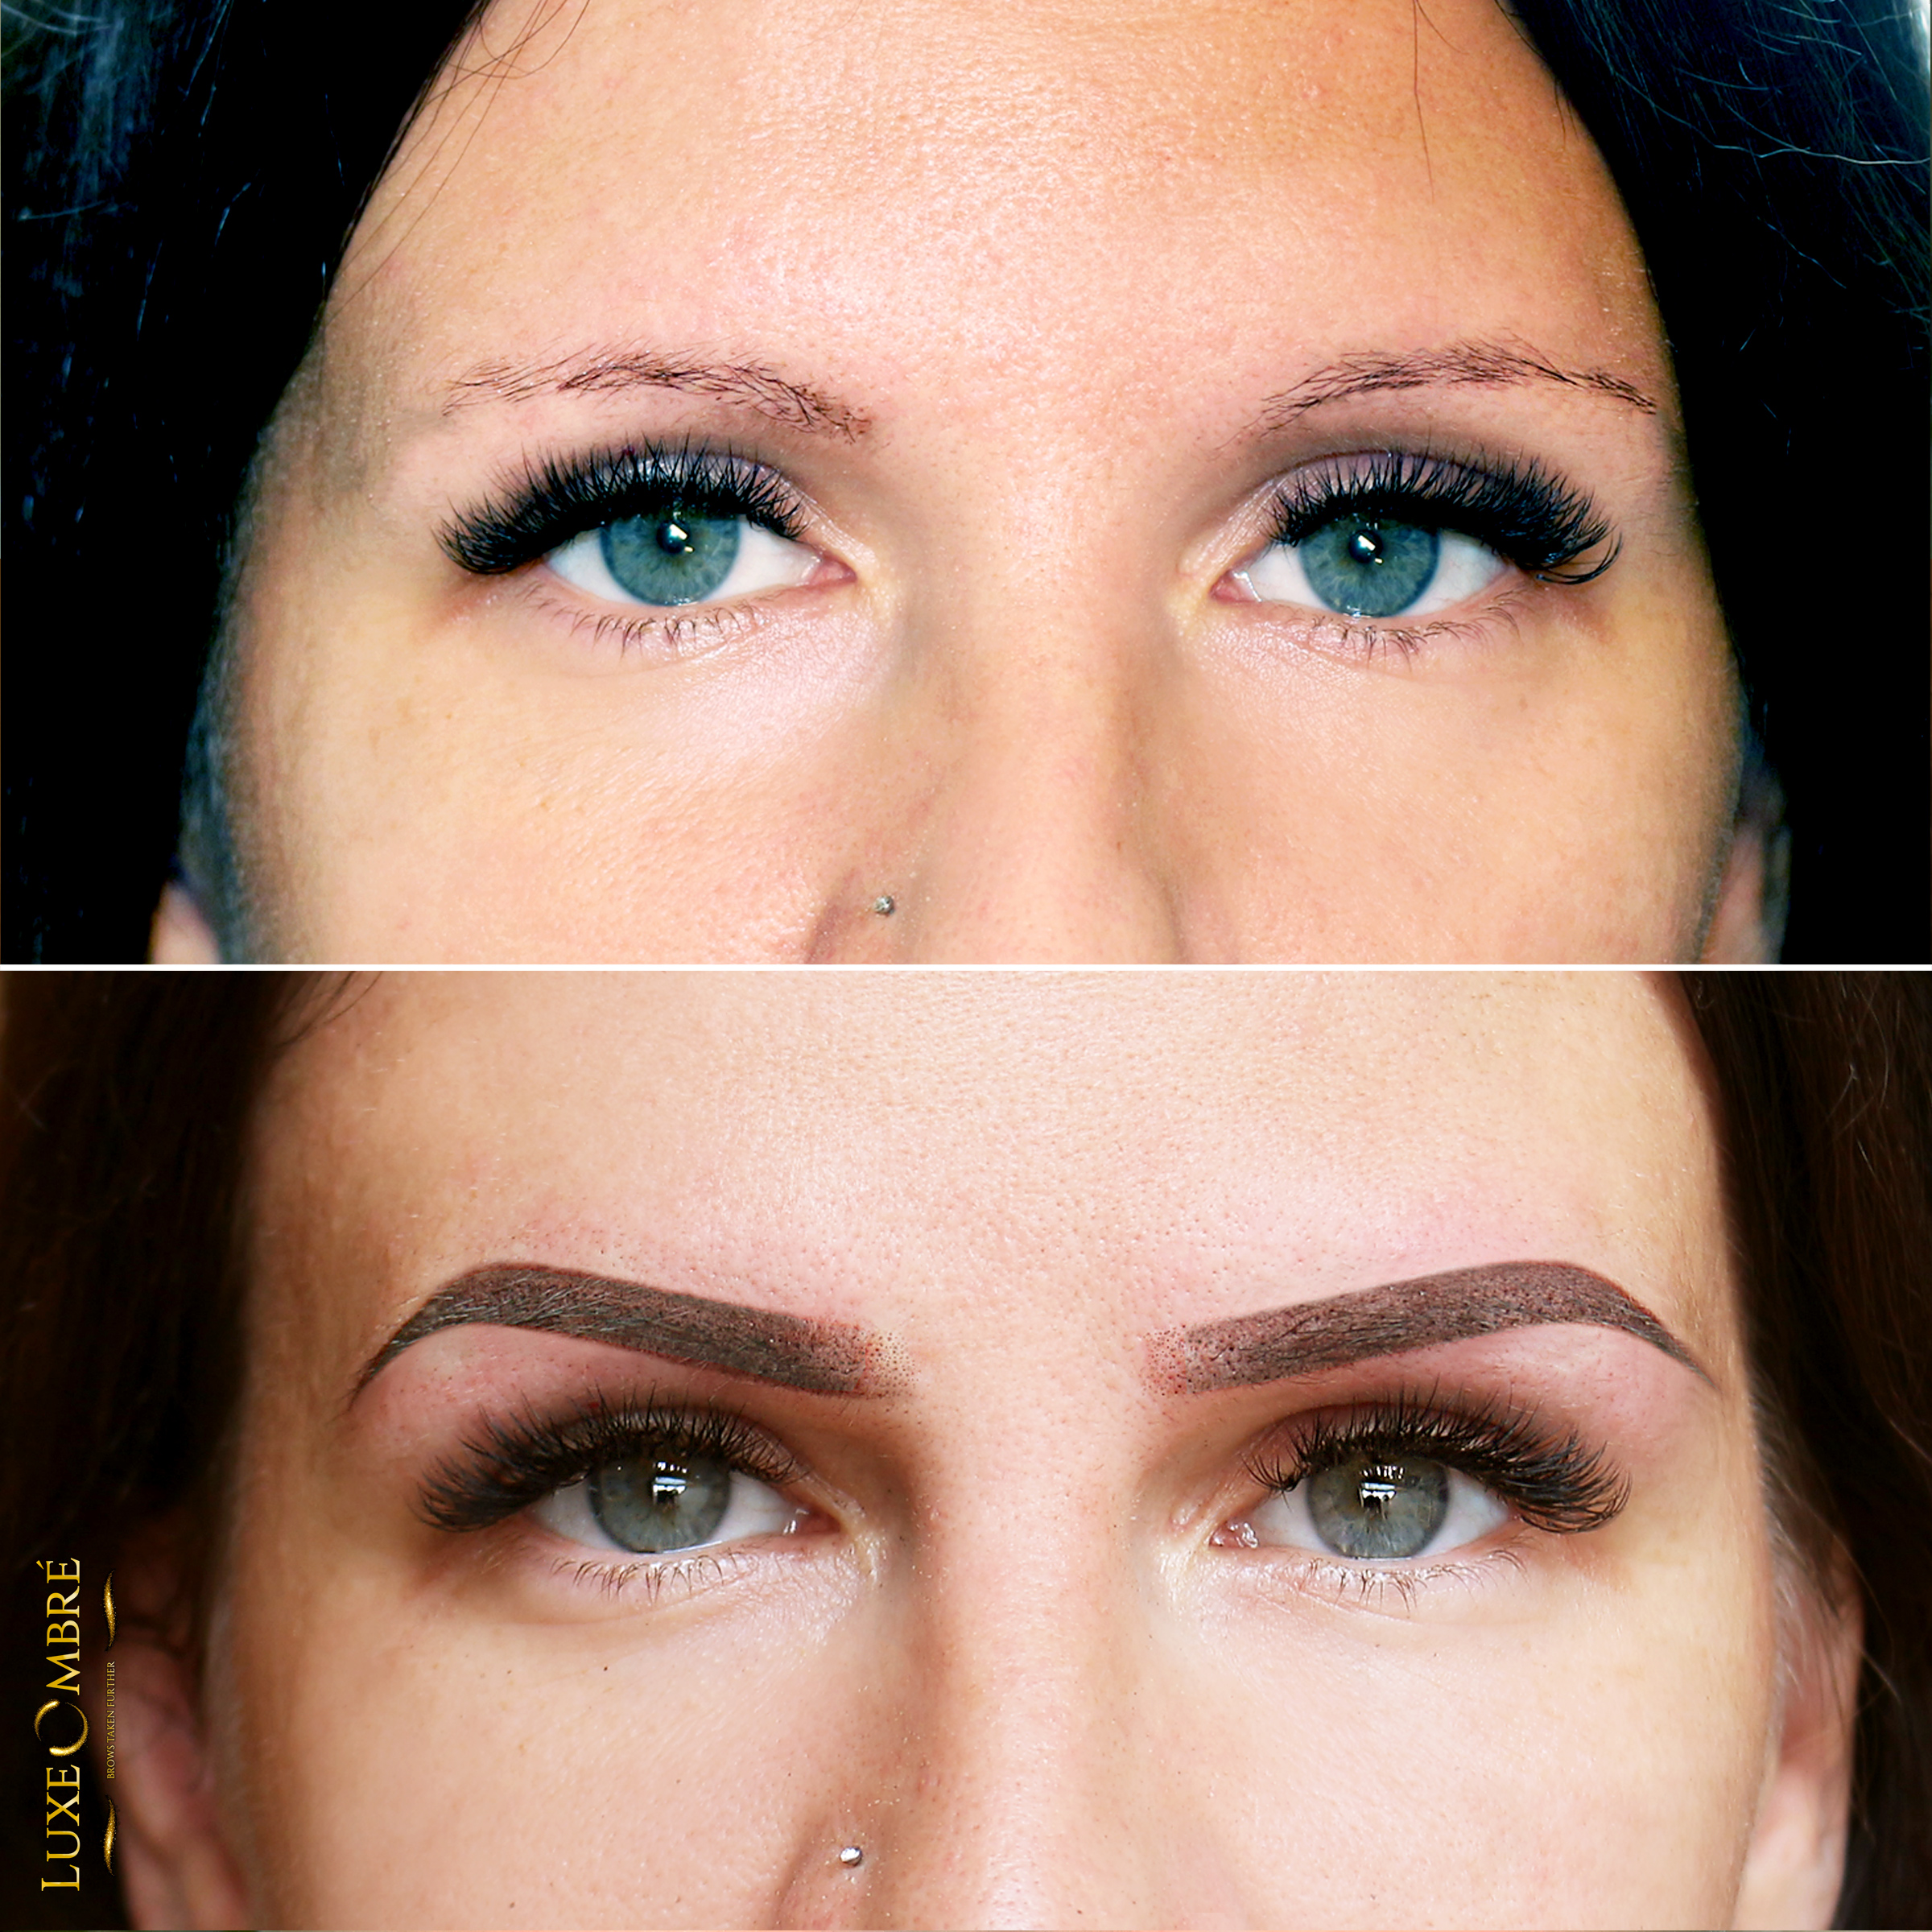 LuxeOmbre brows created on top of quite weak and thin brows.